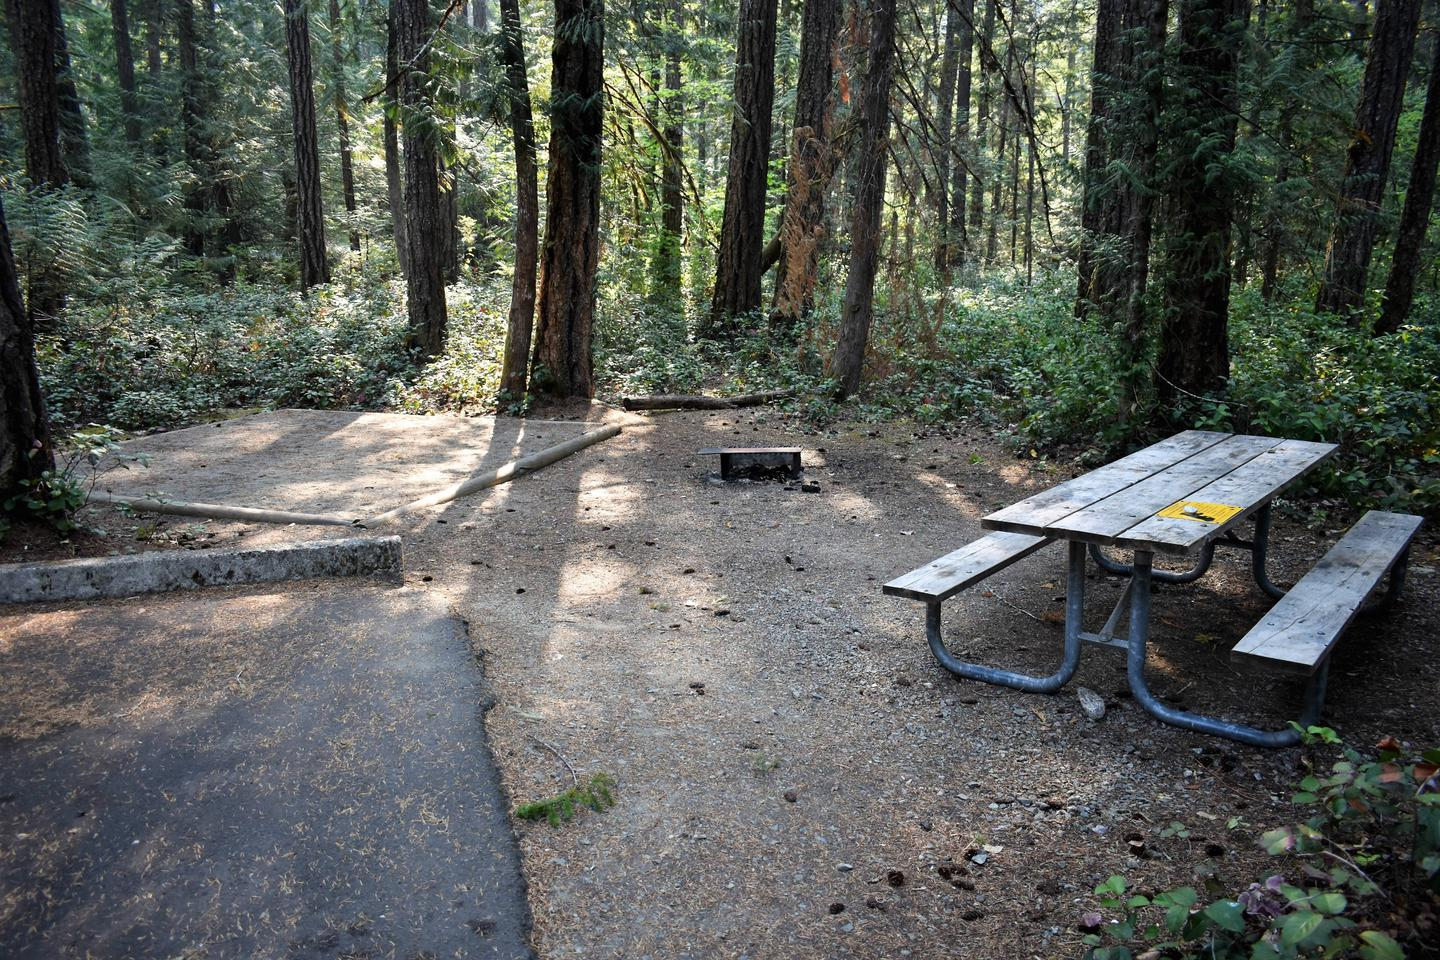 Picnic table, fire ring, and picnic tableView of campsite